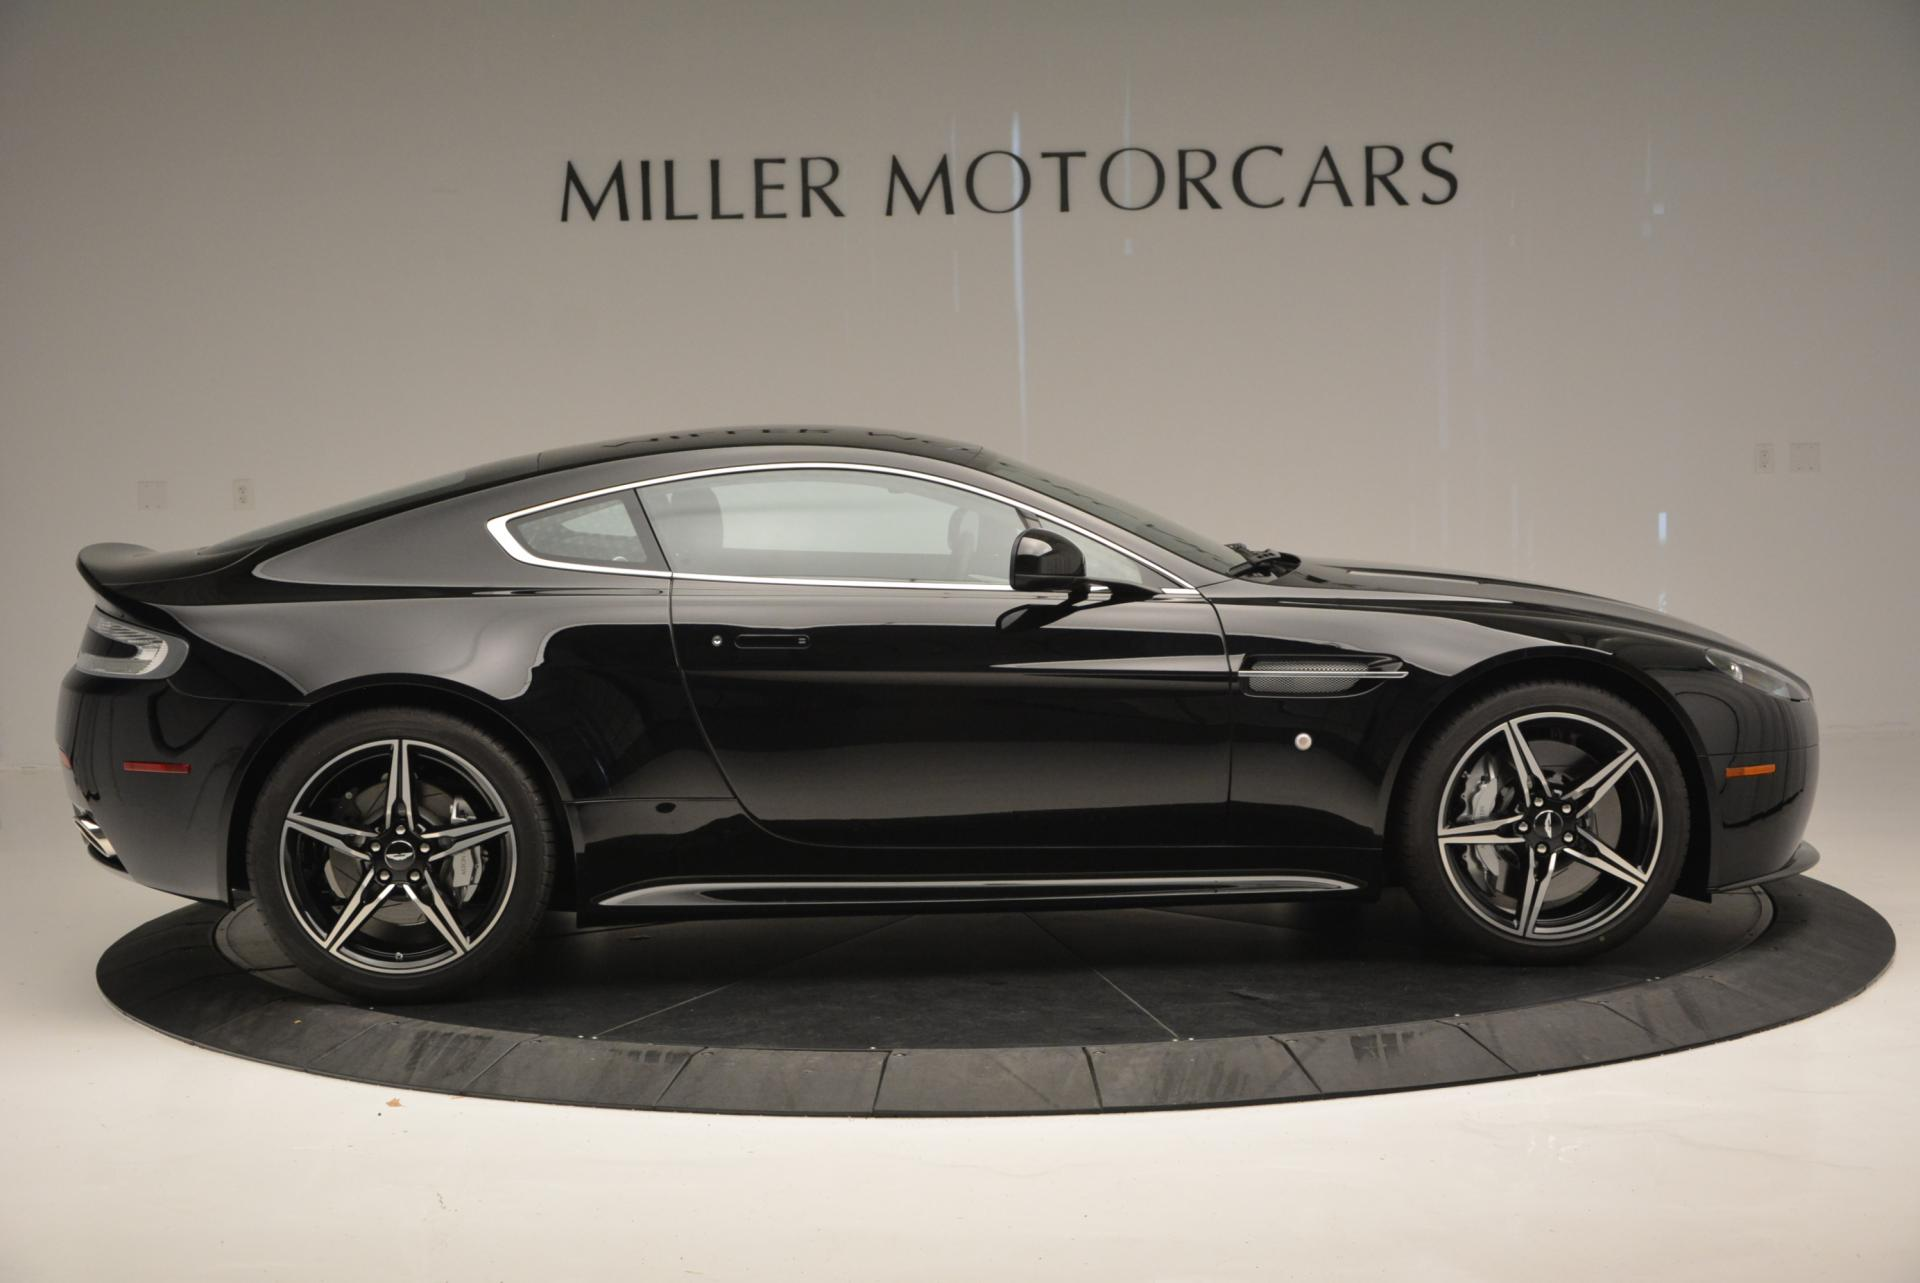 New 2016 Aston Martin V8 Vantage GTS S For Sale In Westport, CT 526_p9